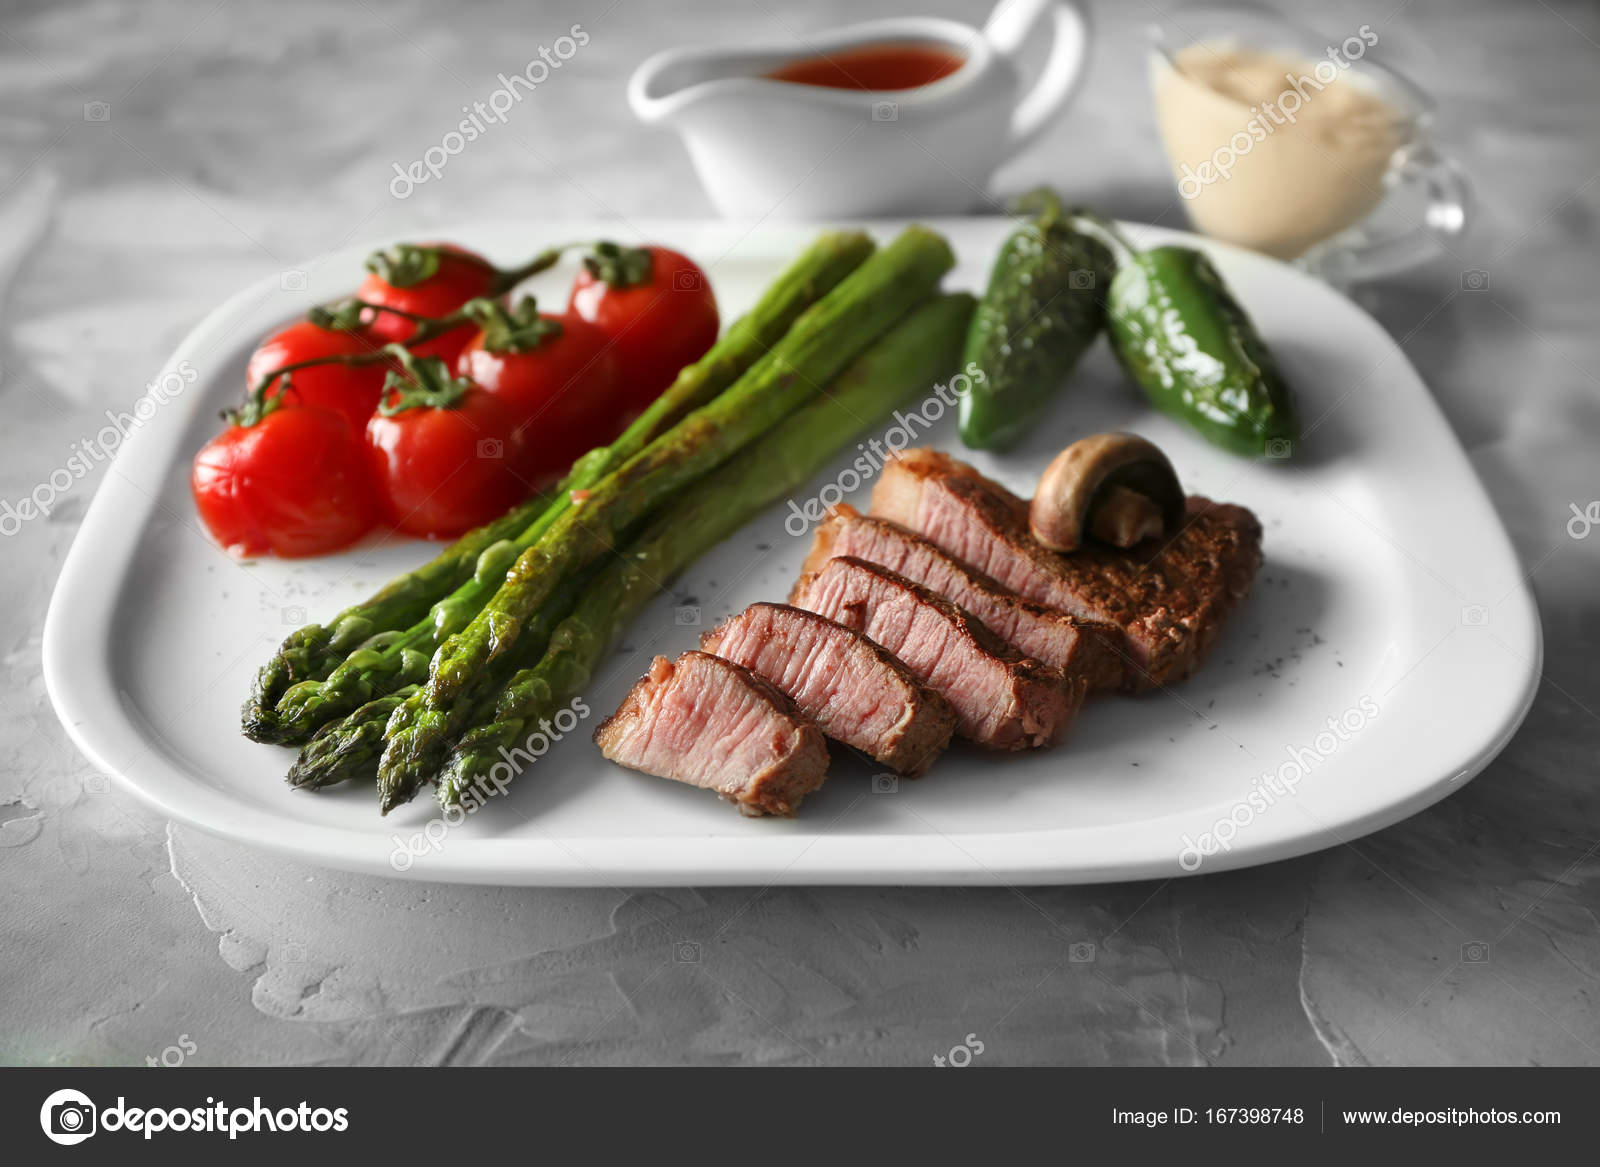 Sliced Steak On White Plate Stock Photo C Belchonock 167398748